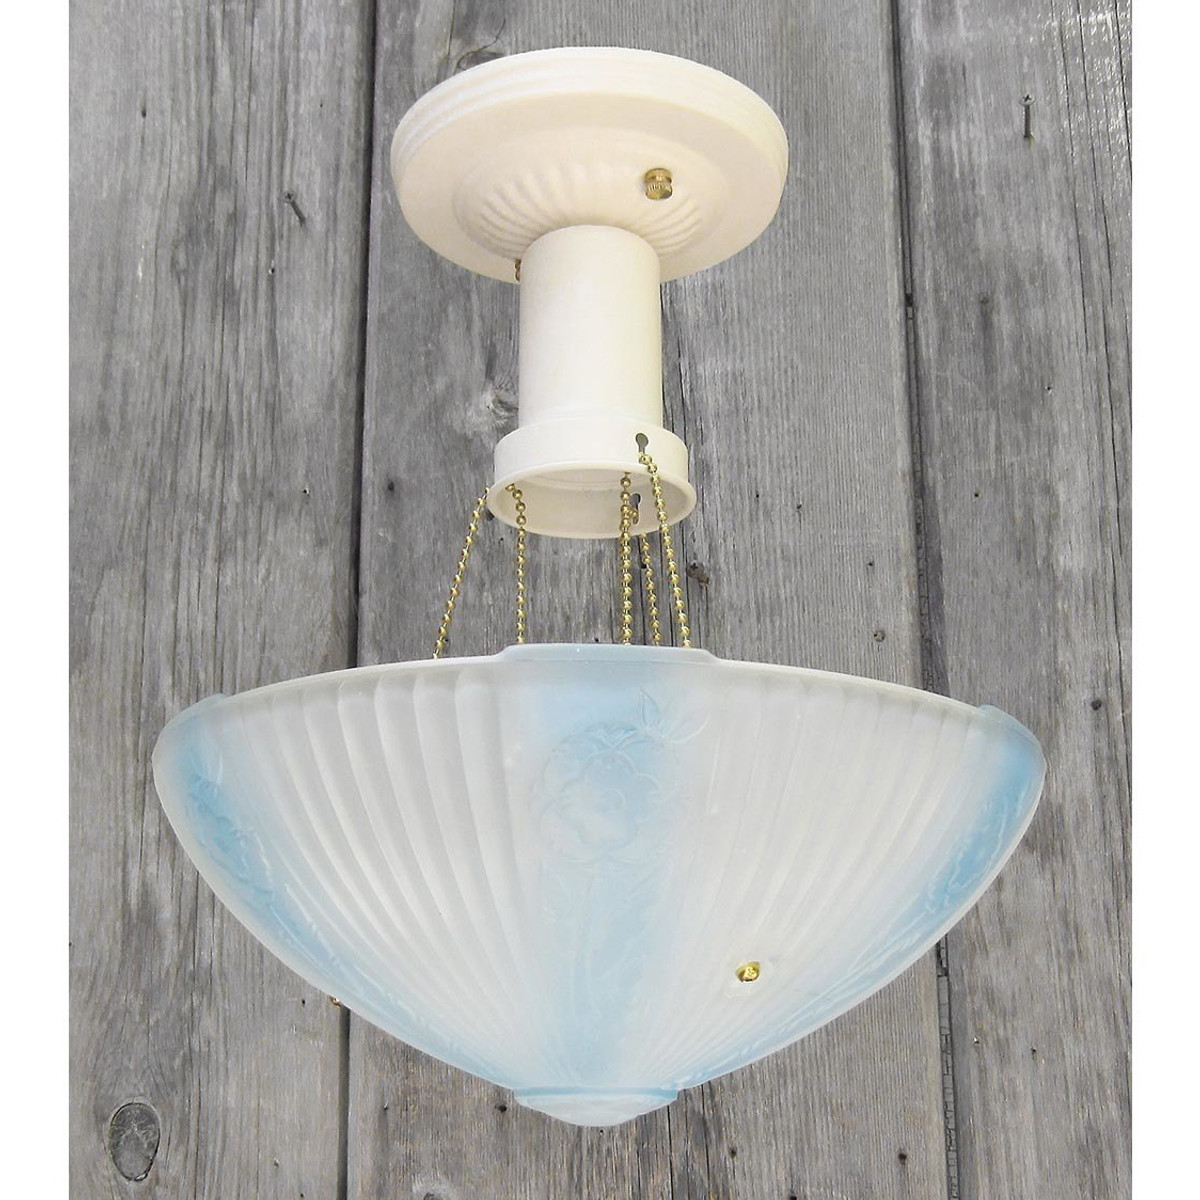 L16150 - Antique Art Moderne Ceiling Light Fixture with Bowl Shade